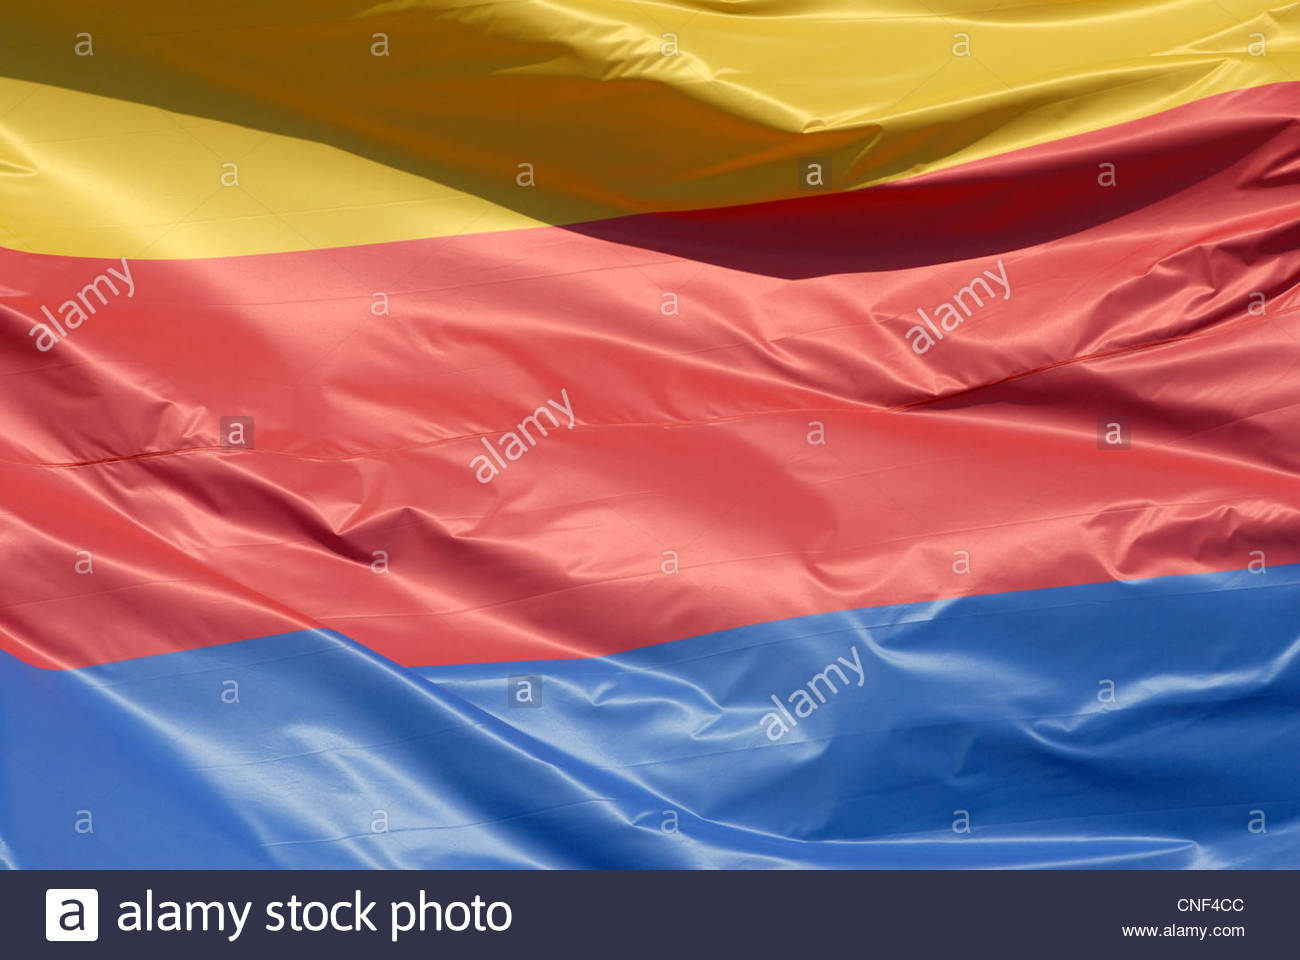 Amsterdam The Netherlands The flag of the province North Holland (Noord Holland) waving in the wind - Stock Image